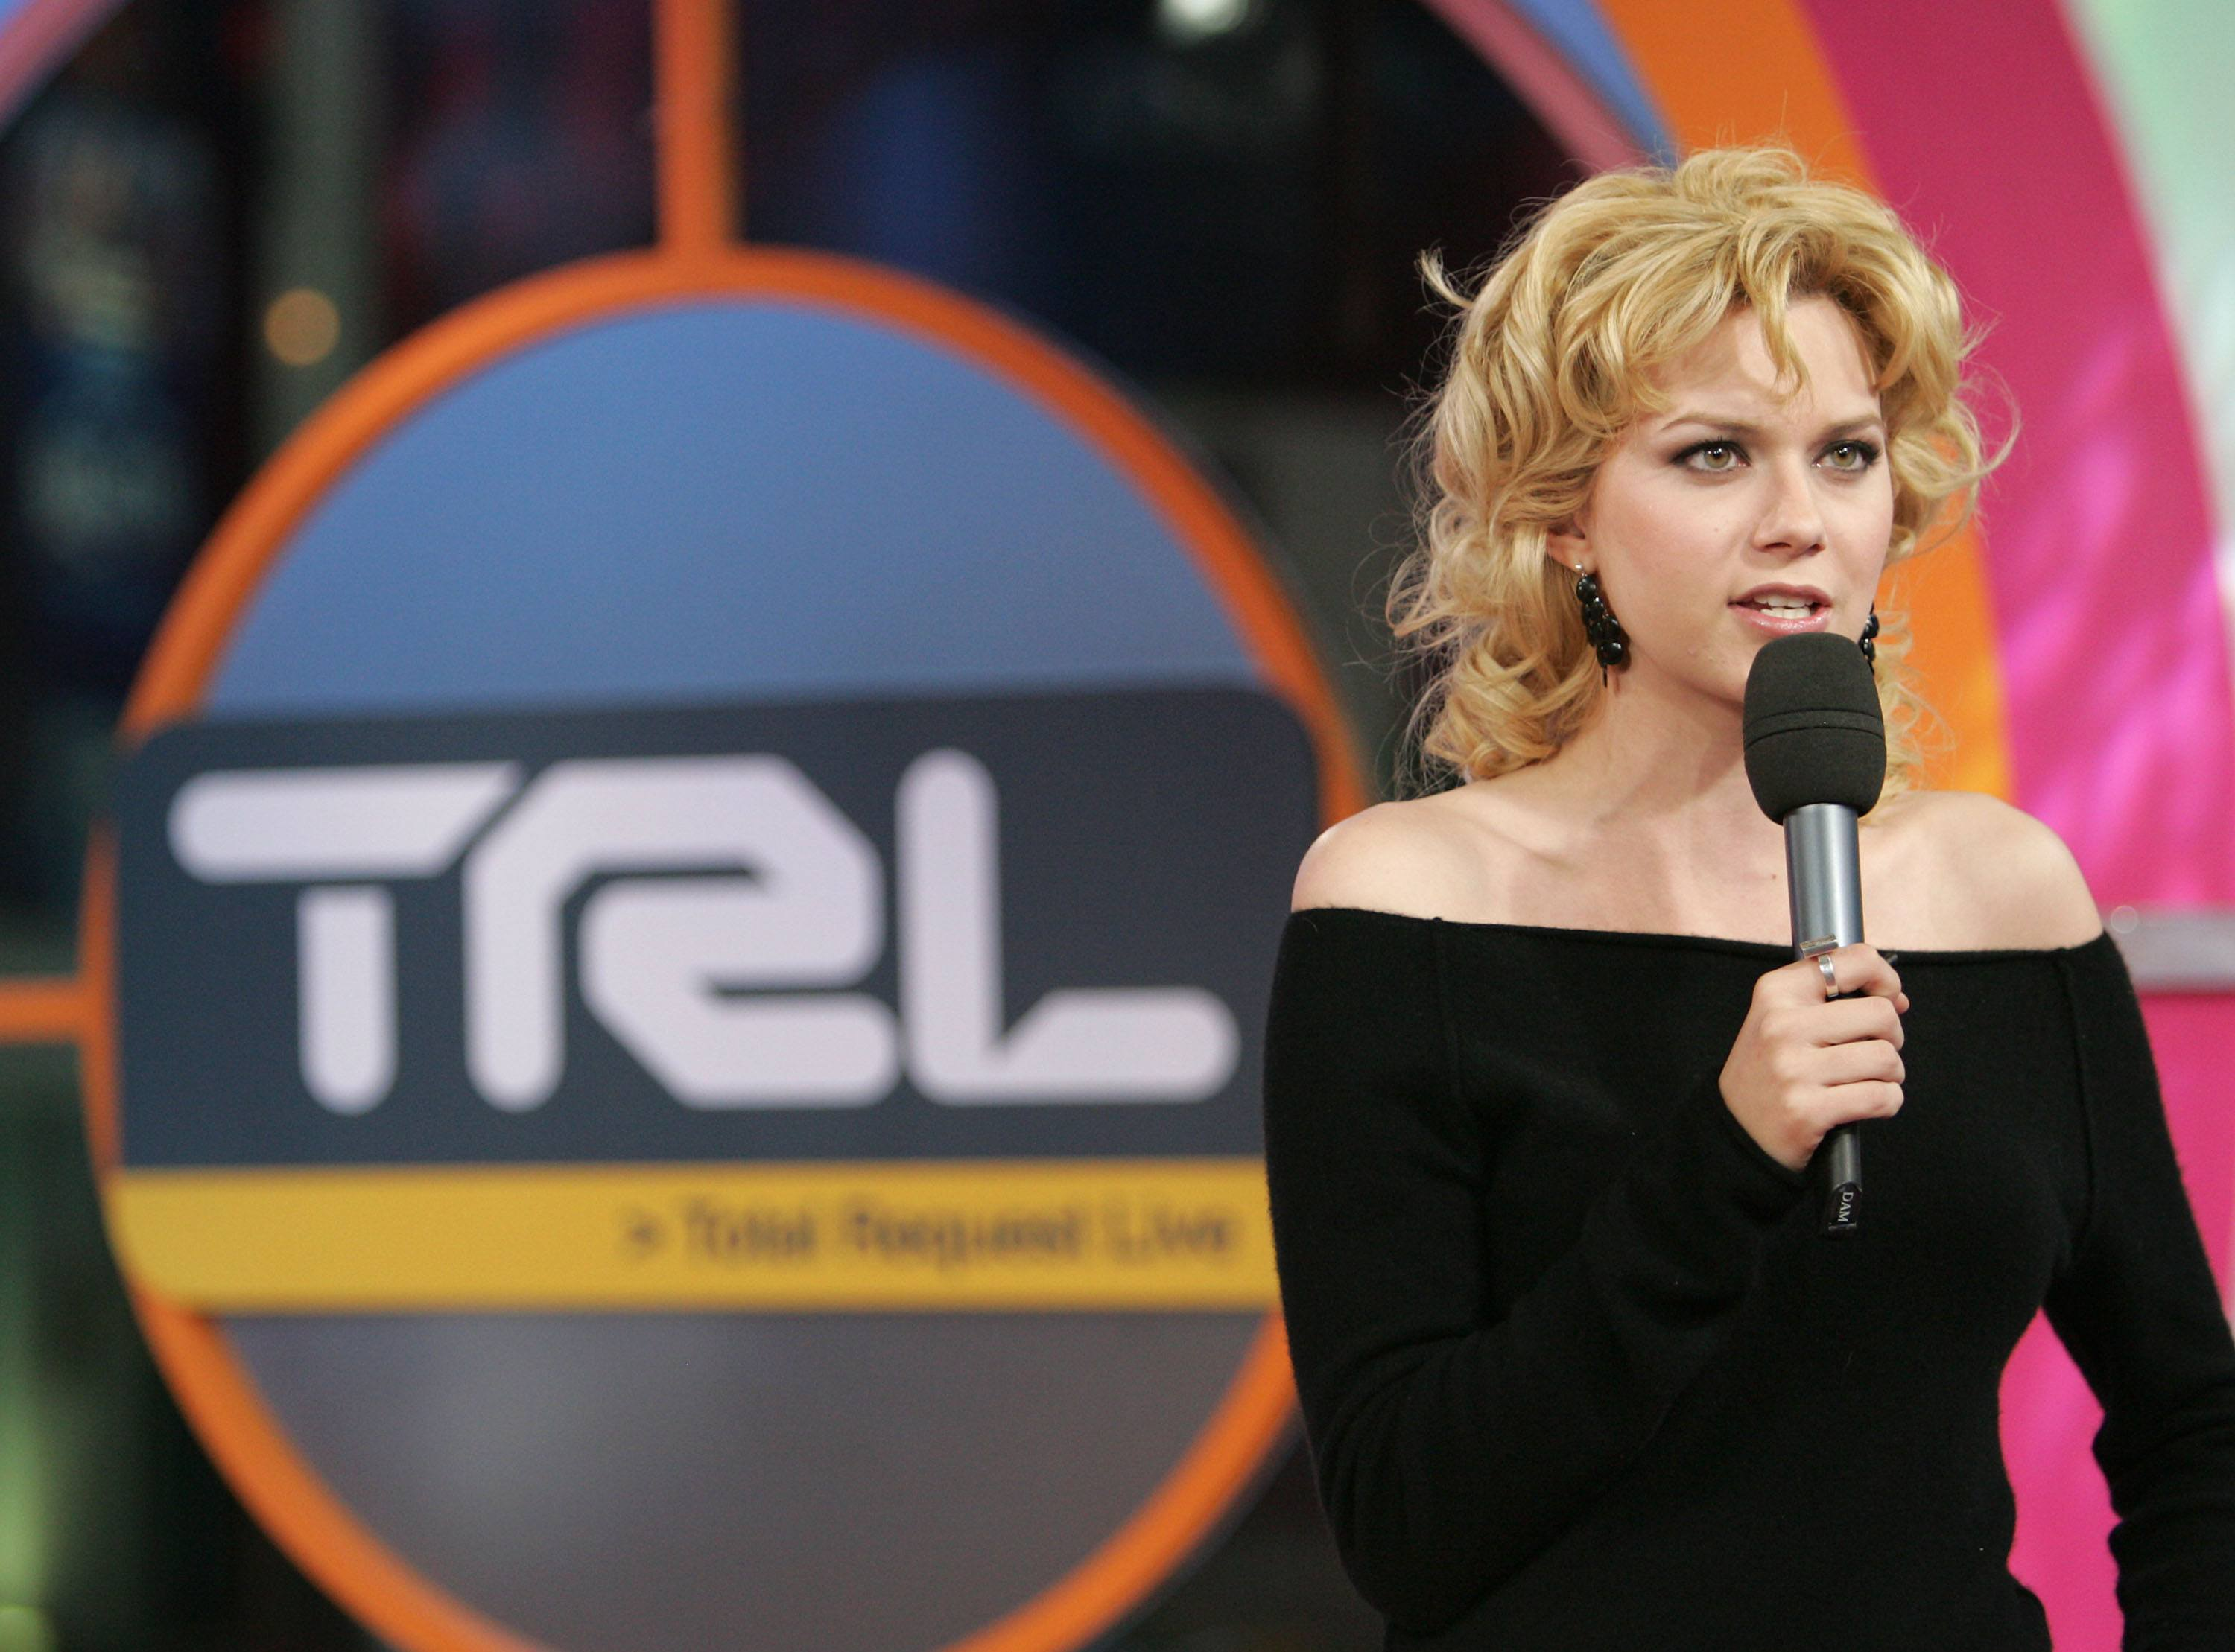 Hilarie Burton on TRL in 2005